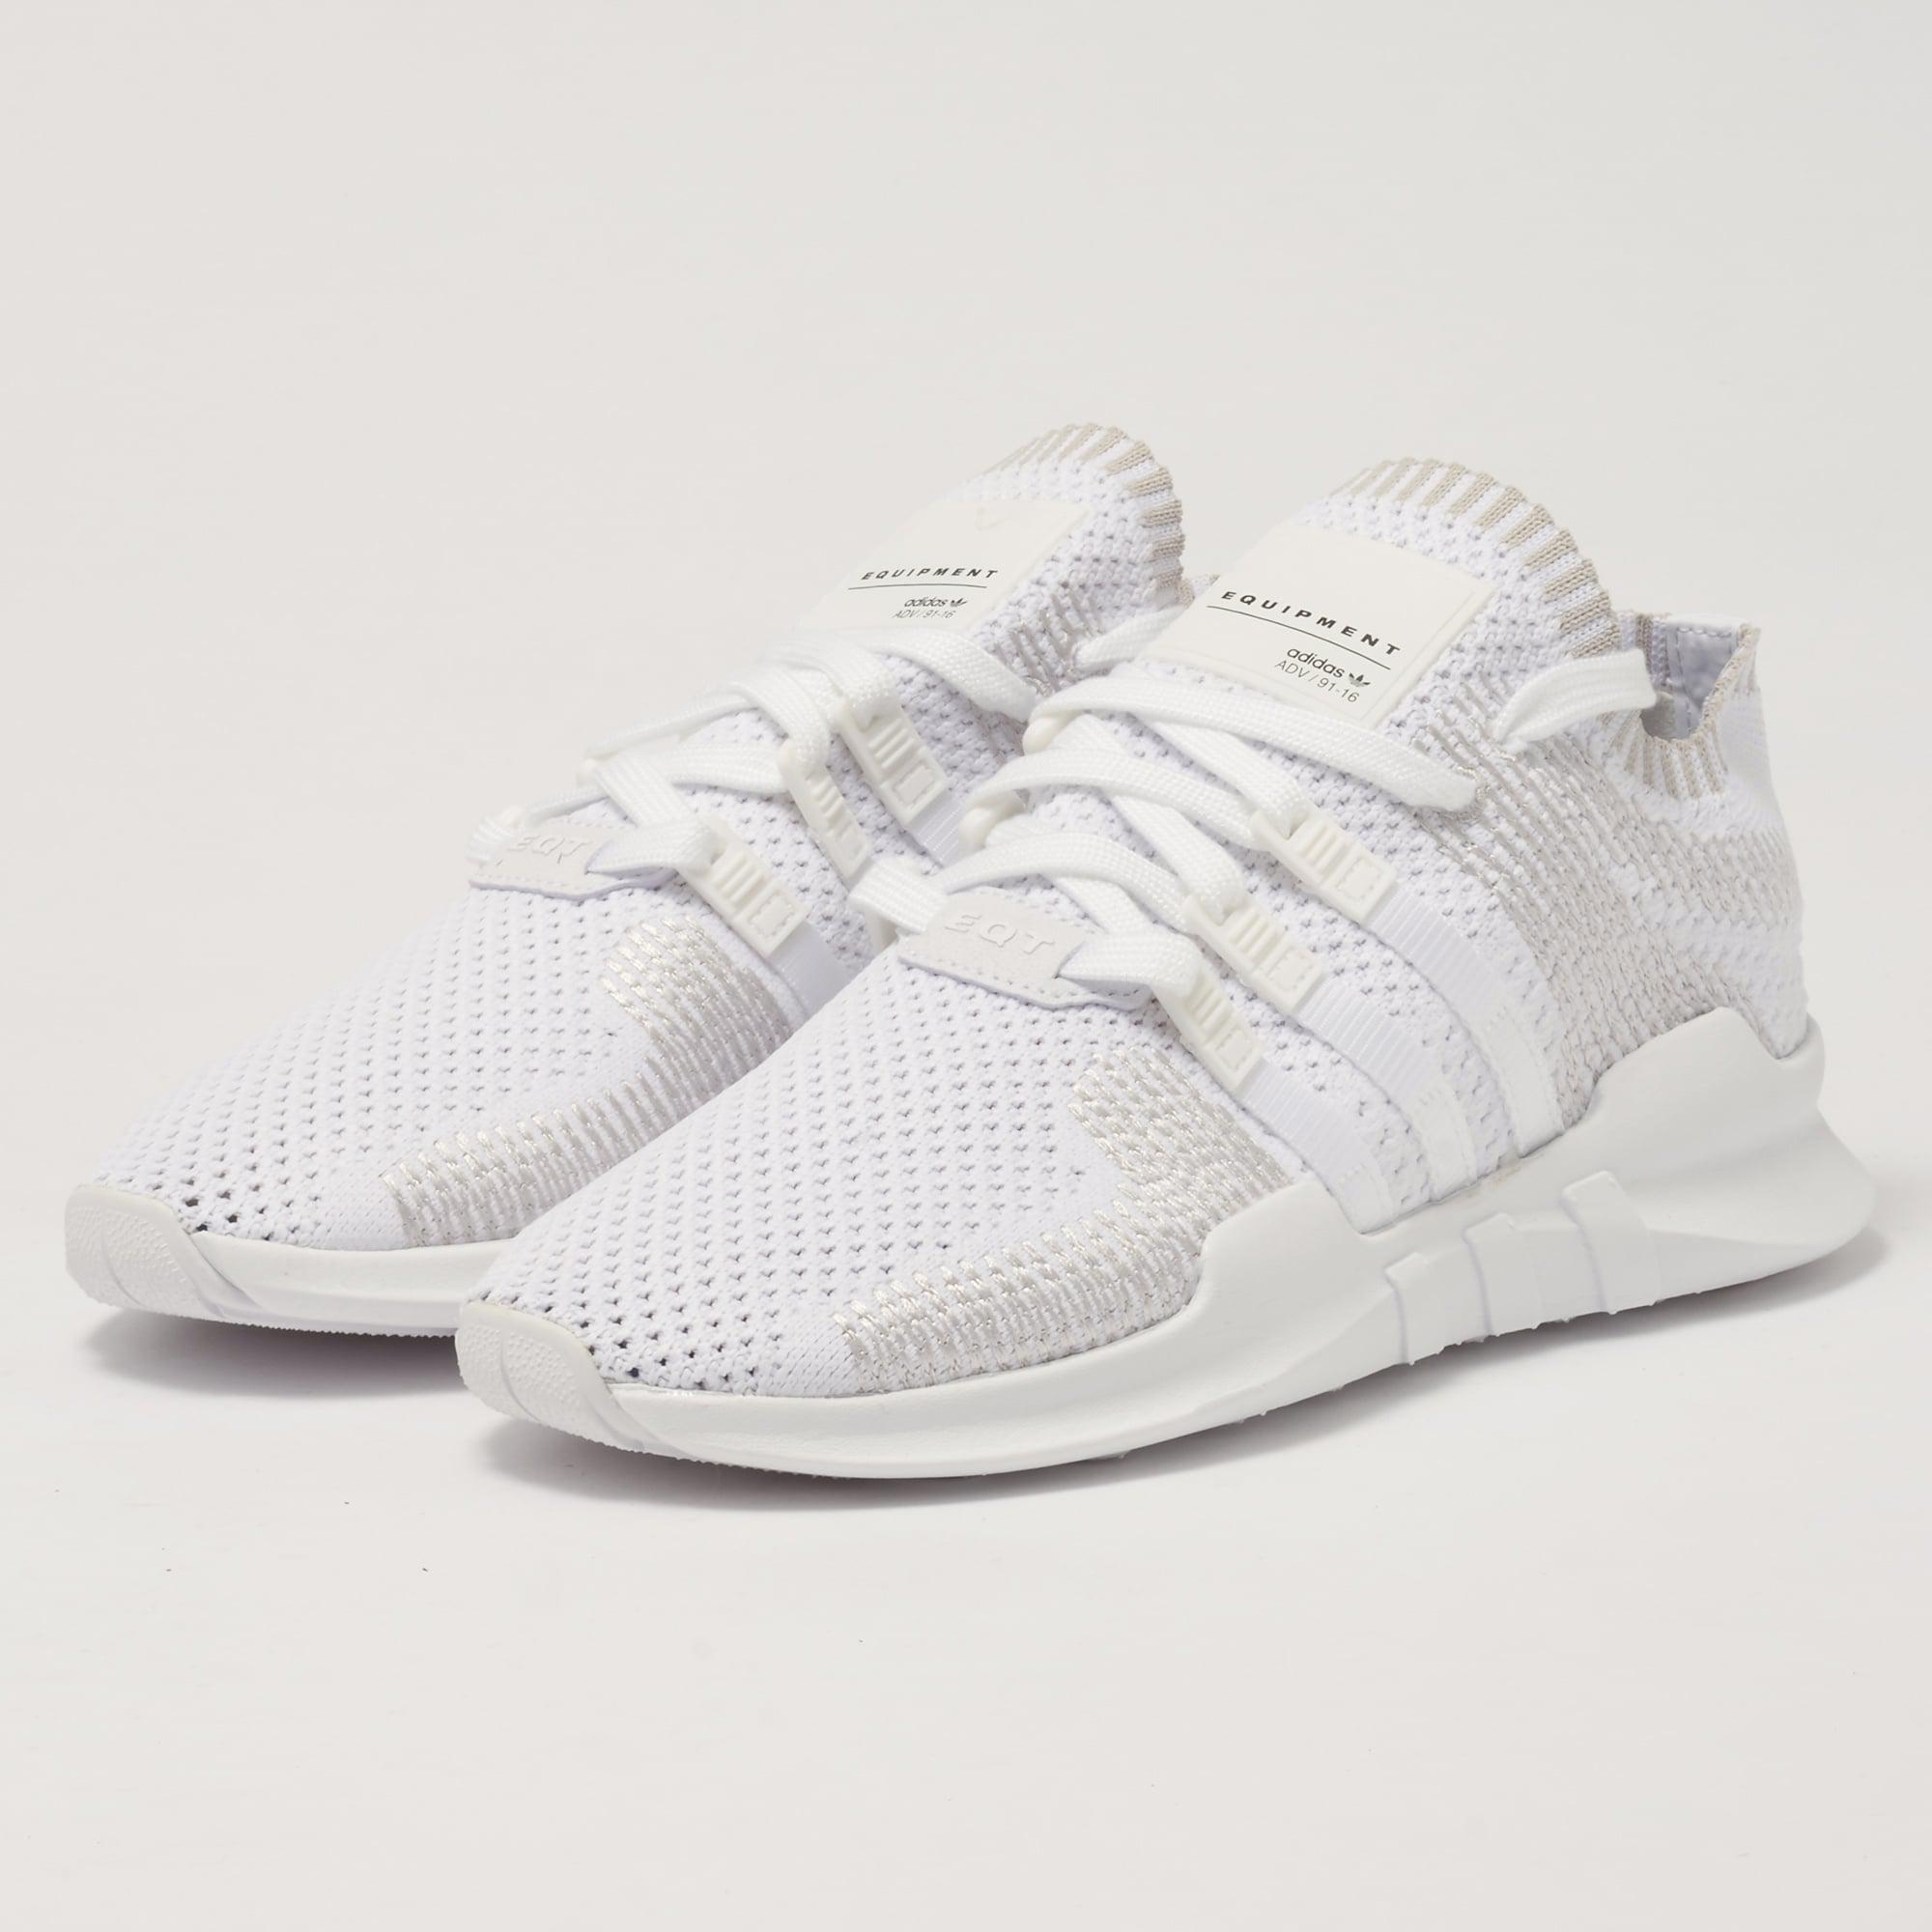 best sneakers 1eb3c 04889 Adidas Originals Eqt Support Adv Primeknit - Footwear White